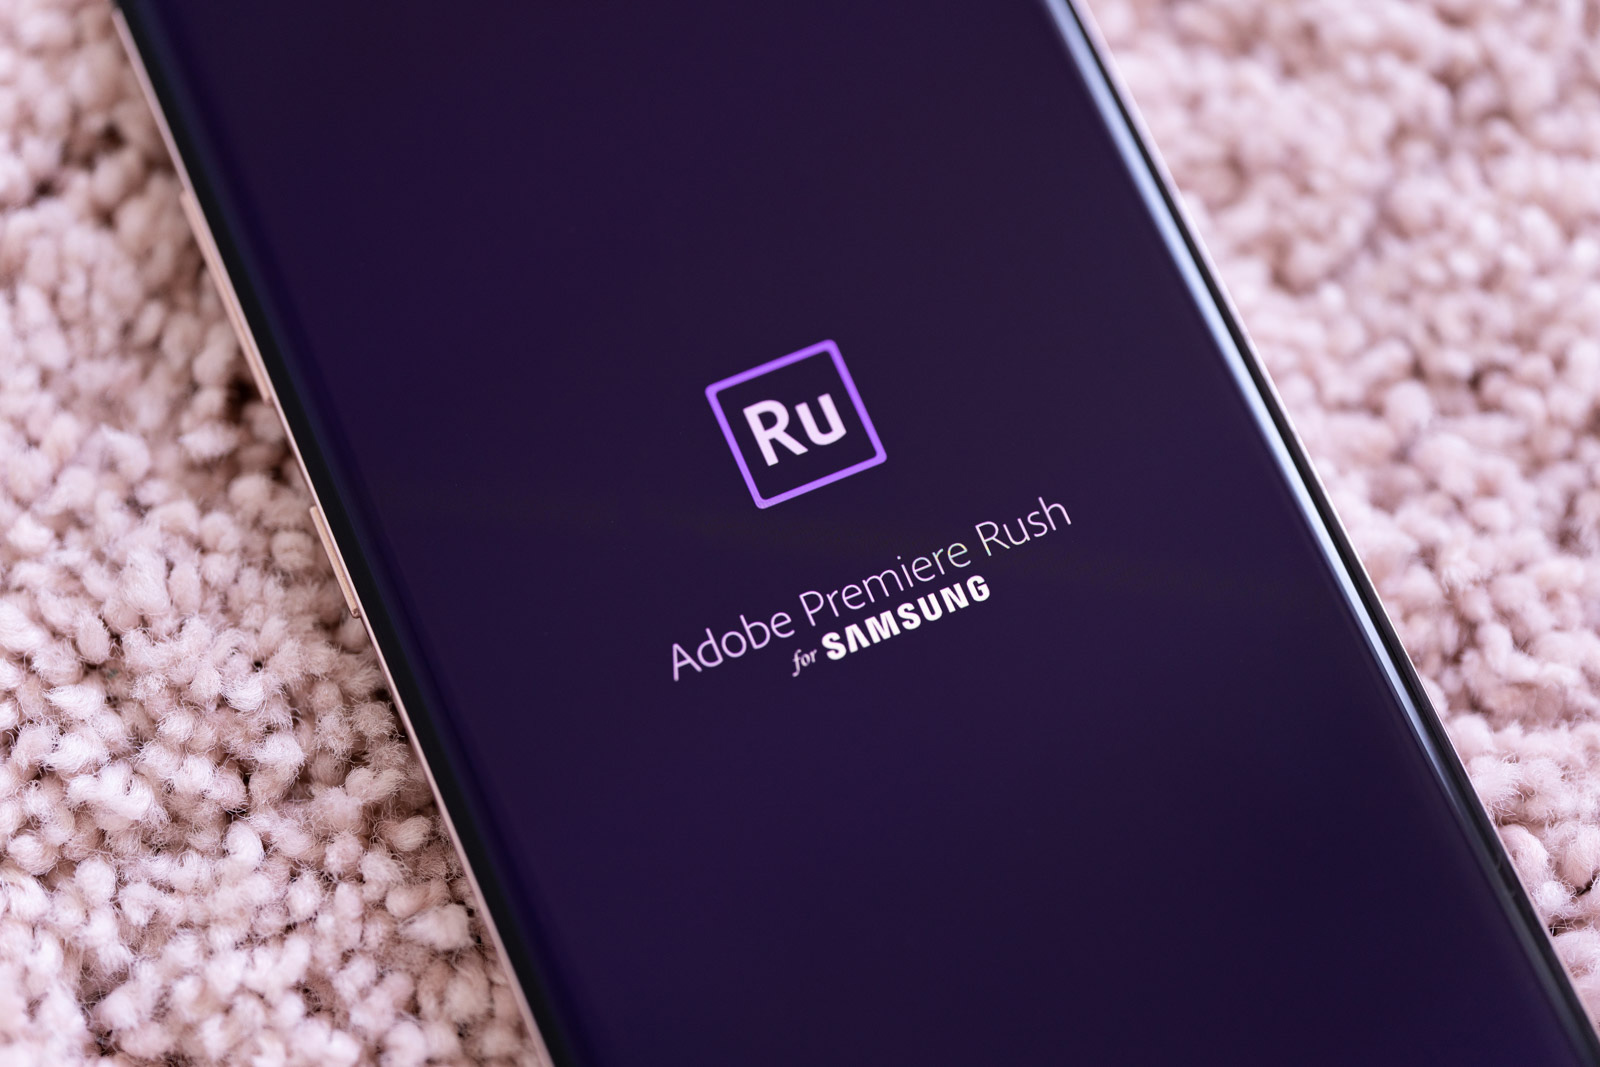 samsung galaxy s10+ performance edition adobe premiere rush